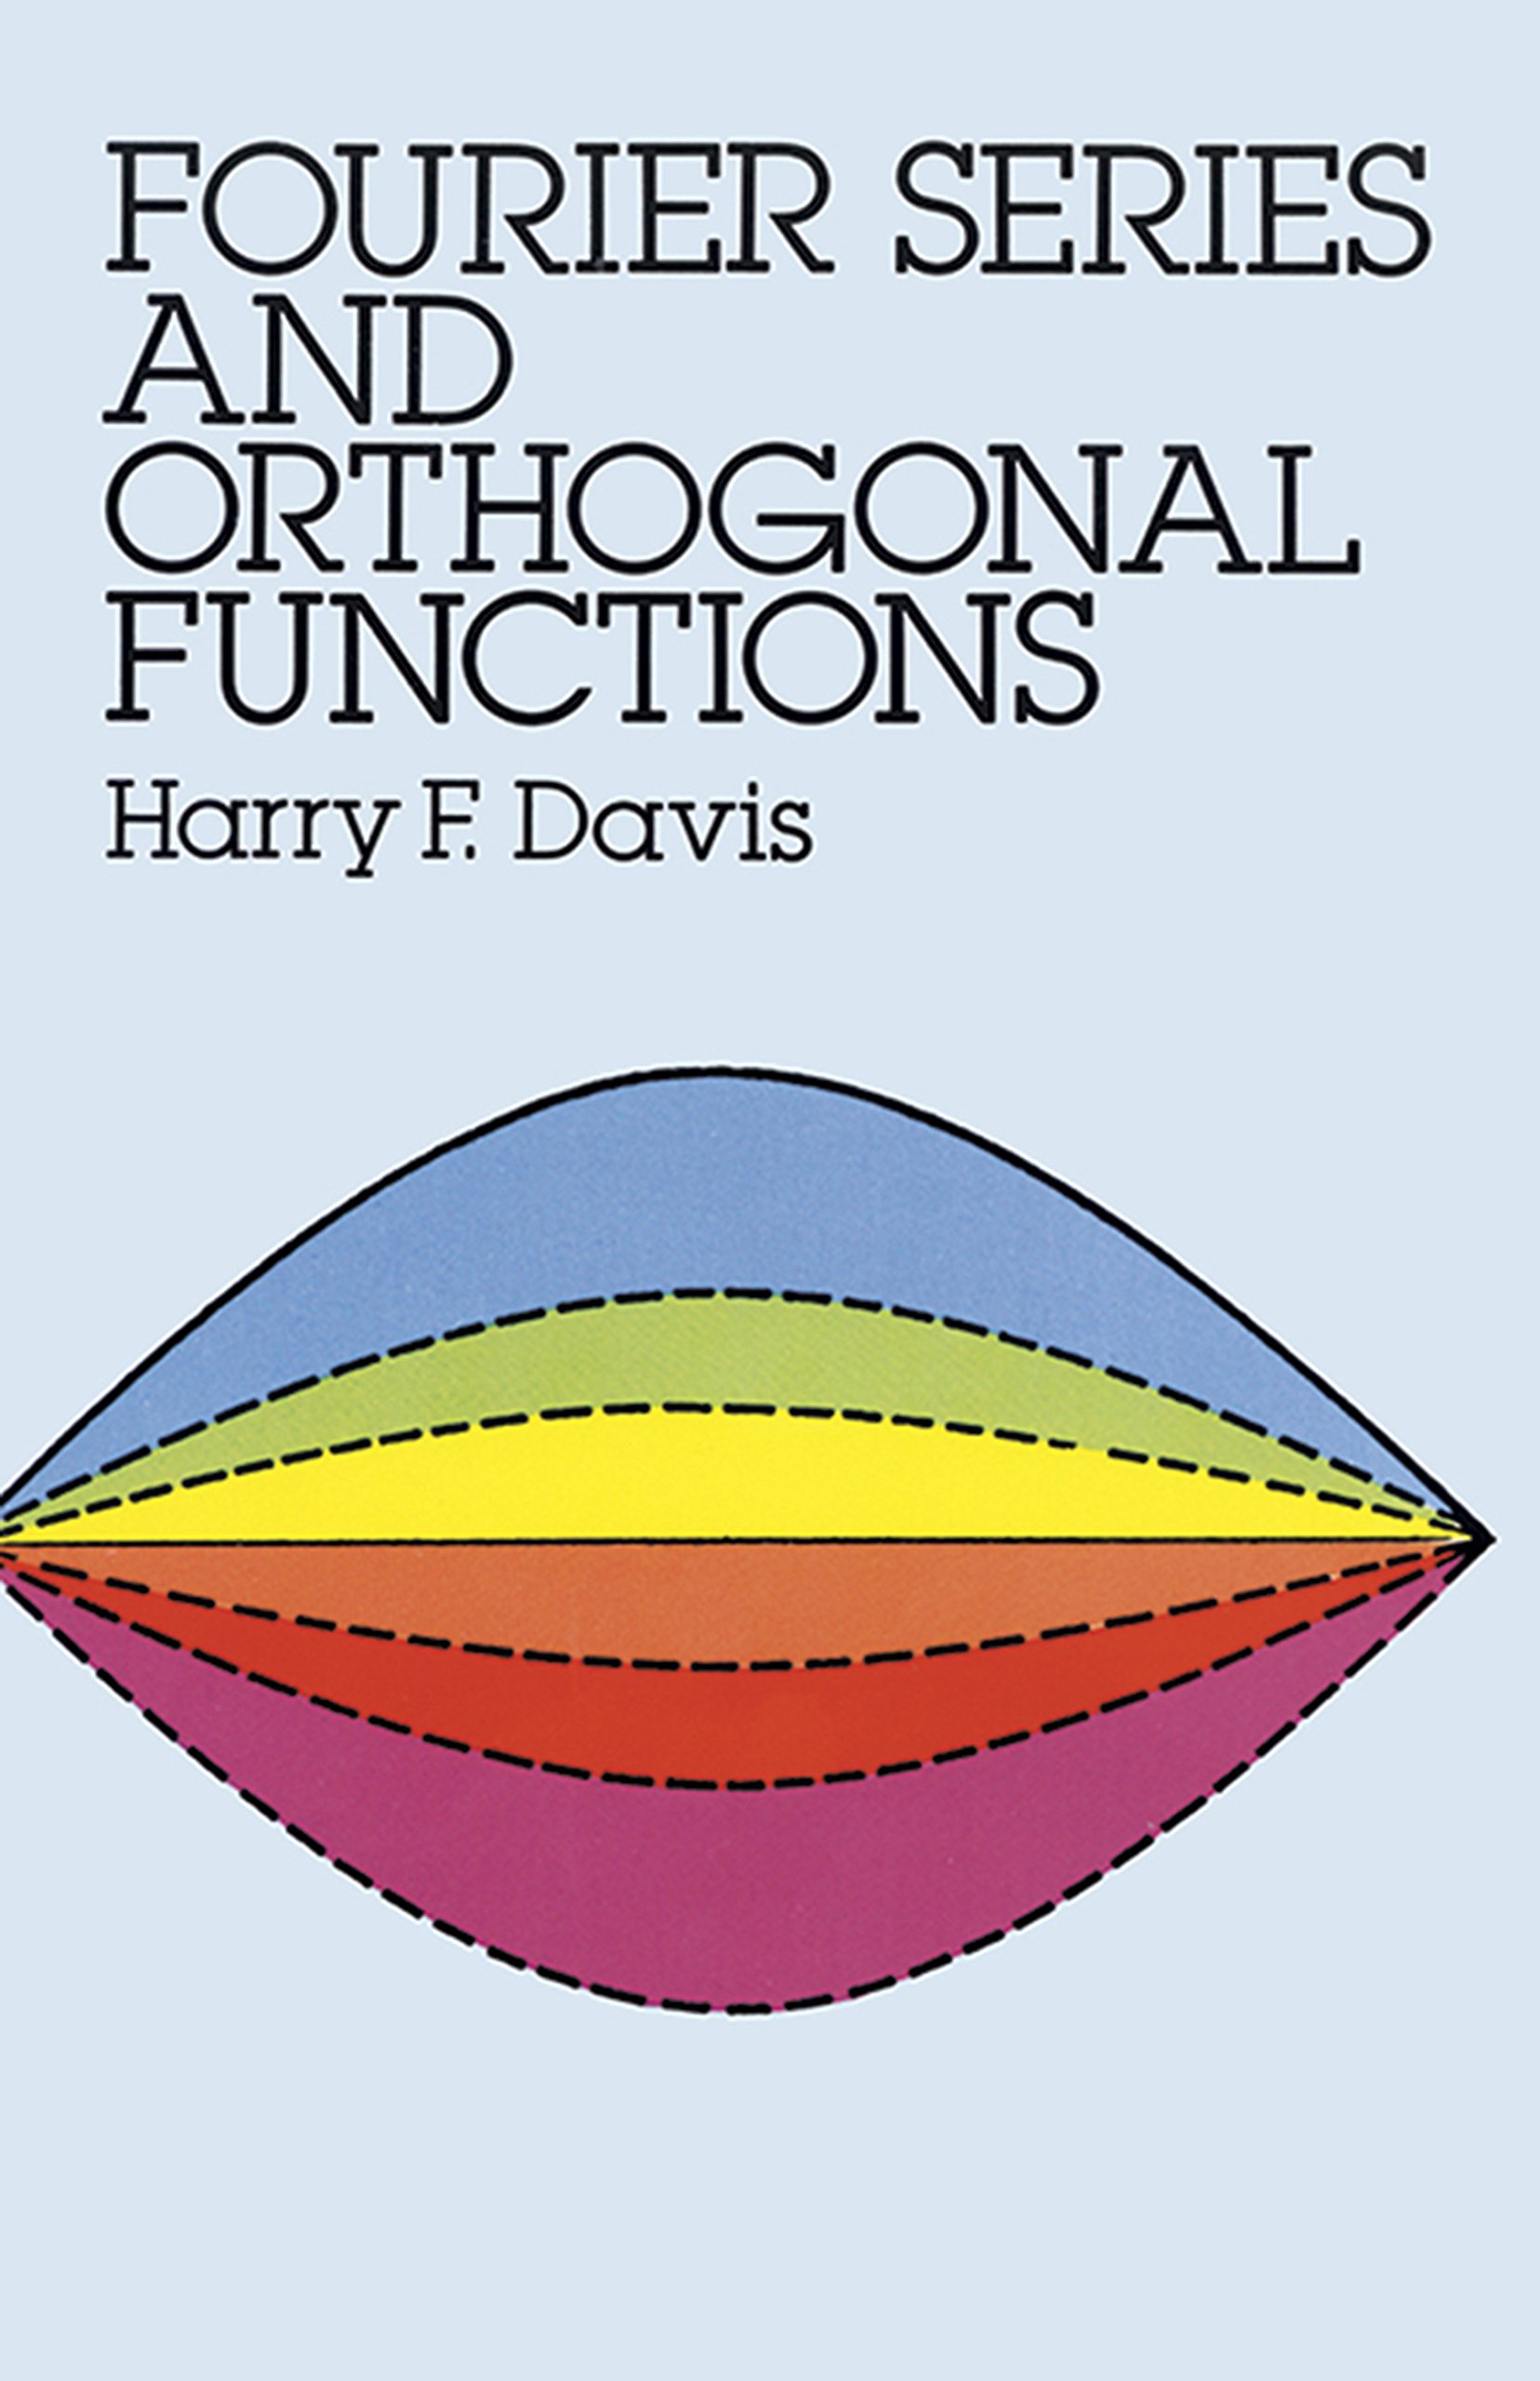 Fourier Series And Orthogonal Functions Dover Books On Mathematics Harry F Davis 0800759659739 Books